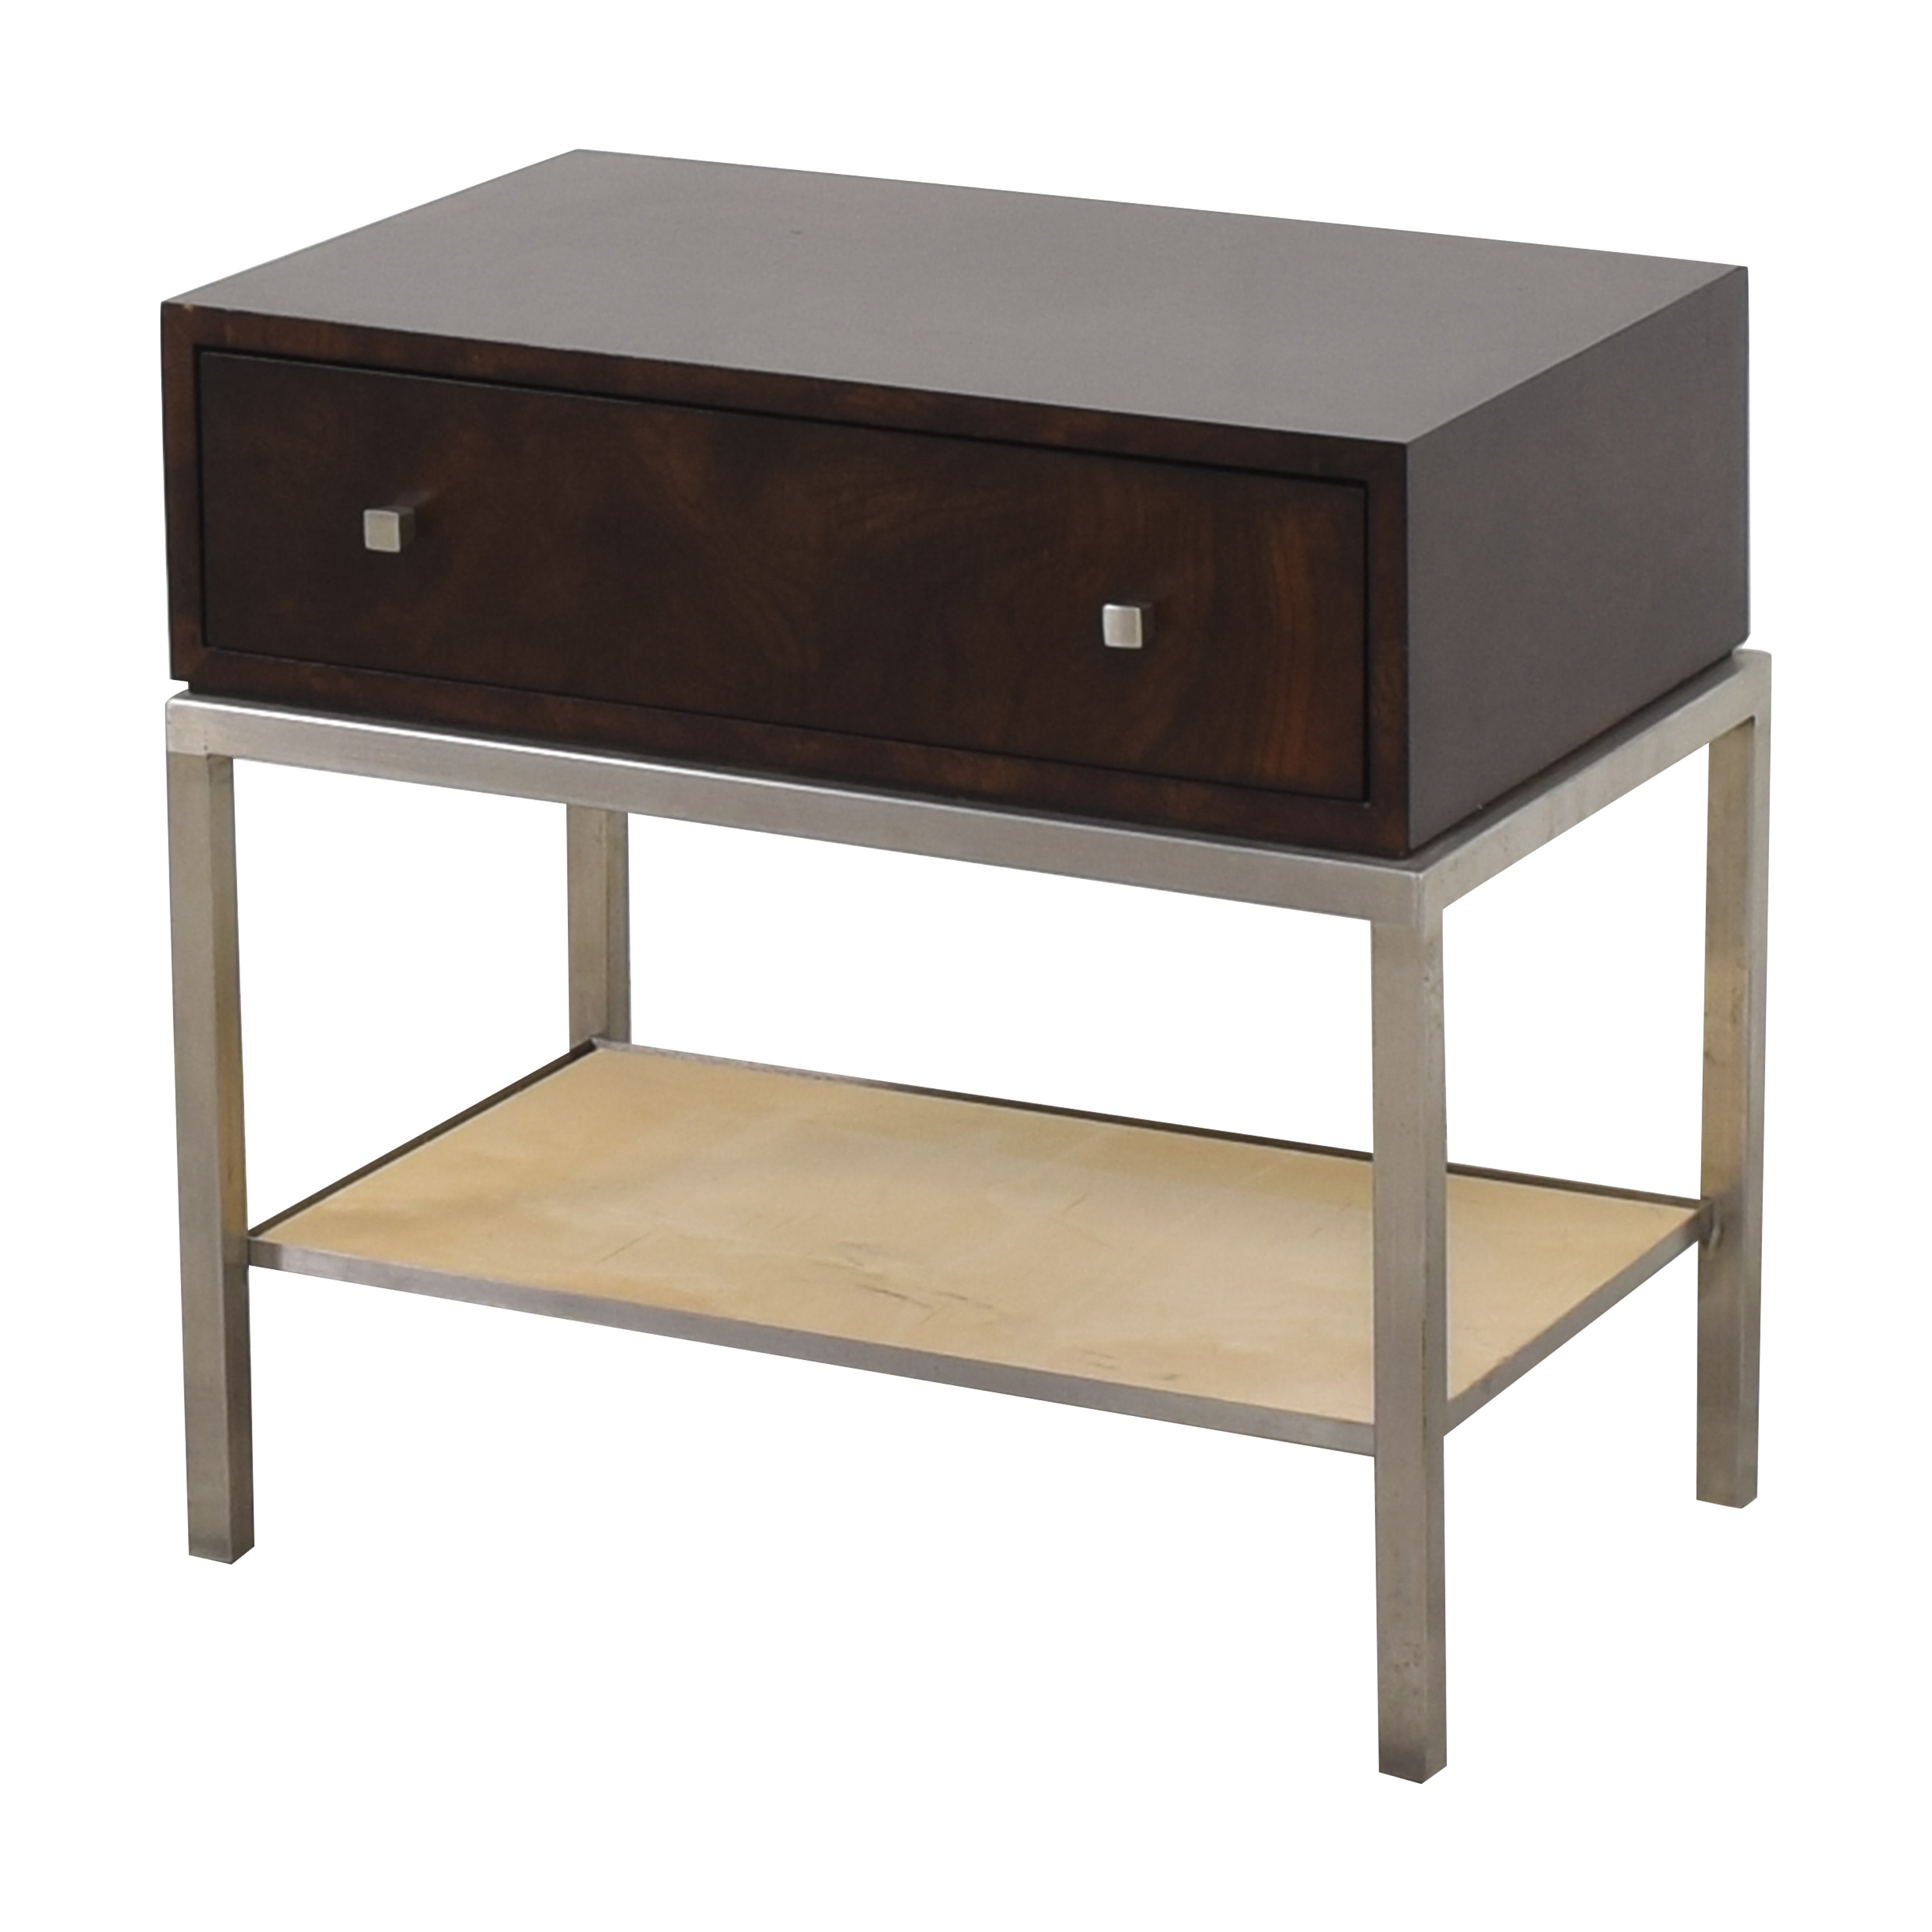 Ethan Allen Side Table with Drawer / Tables